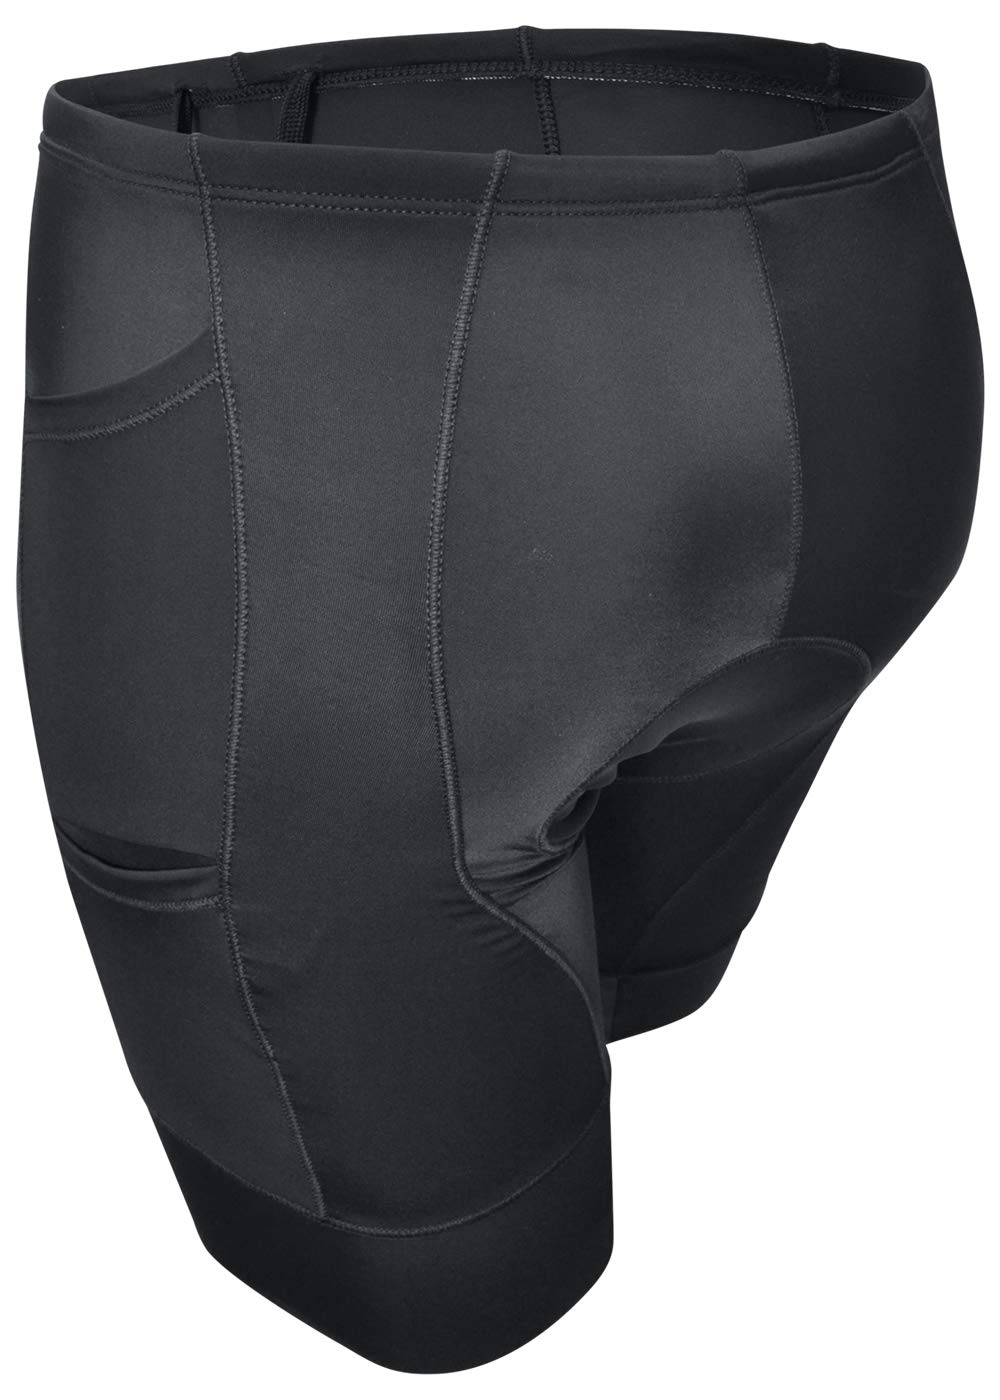 De Soto Mobius Tri Short 4-Pocket (Black, X-Large) by De Soto (Image #5)